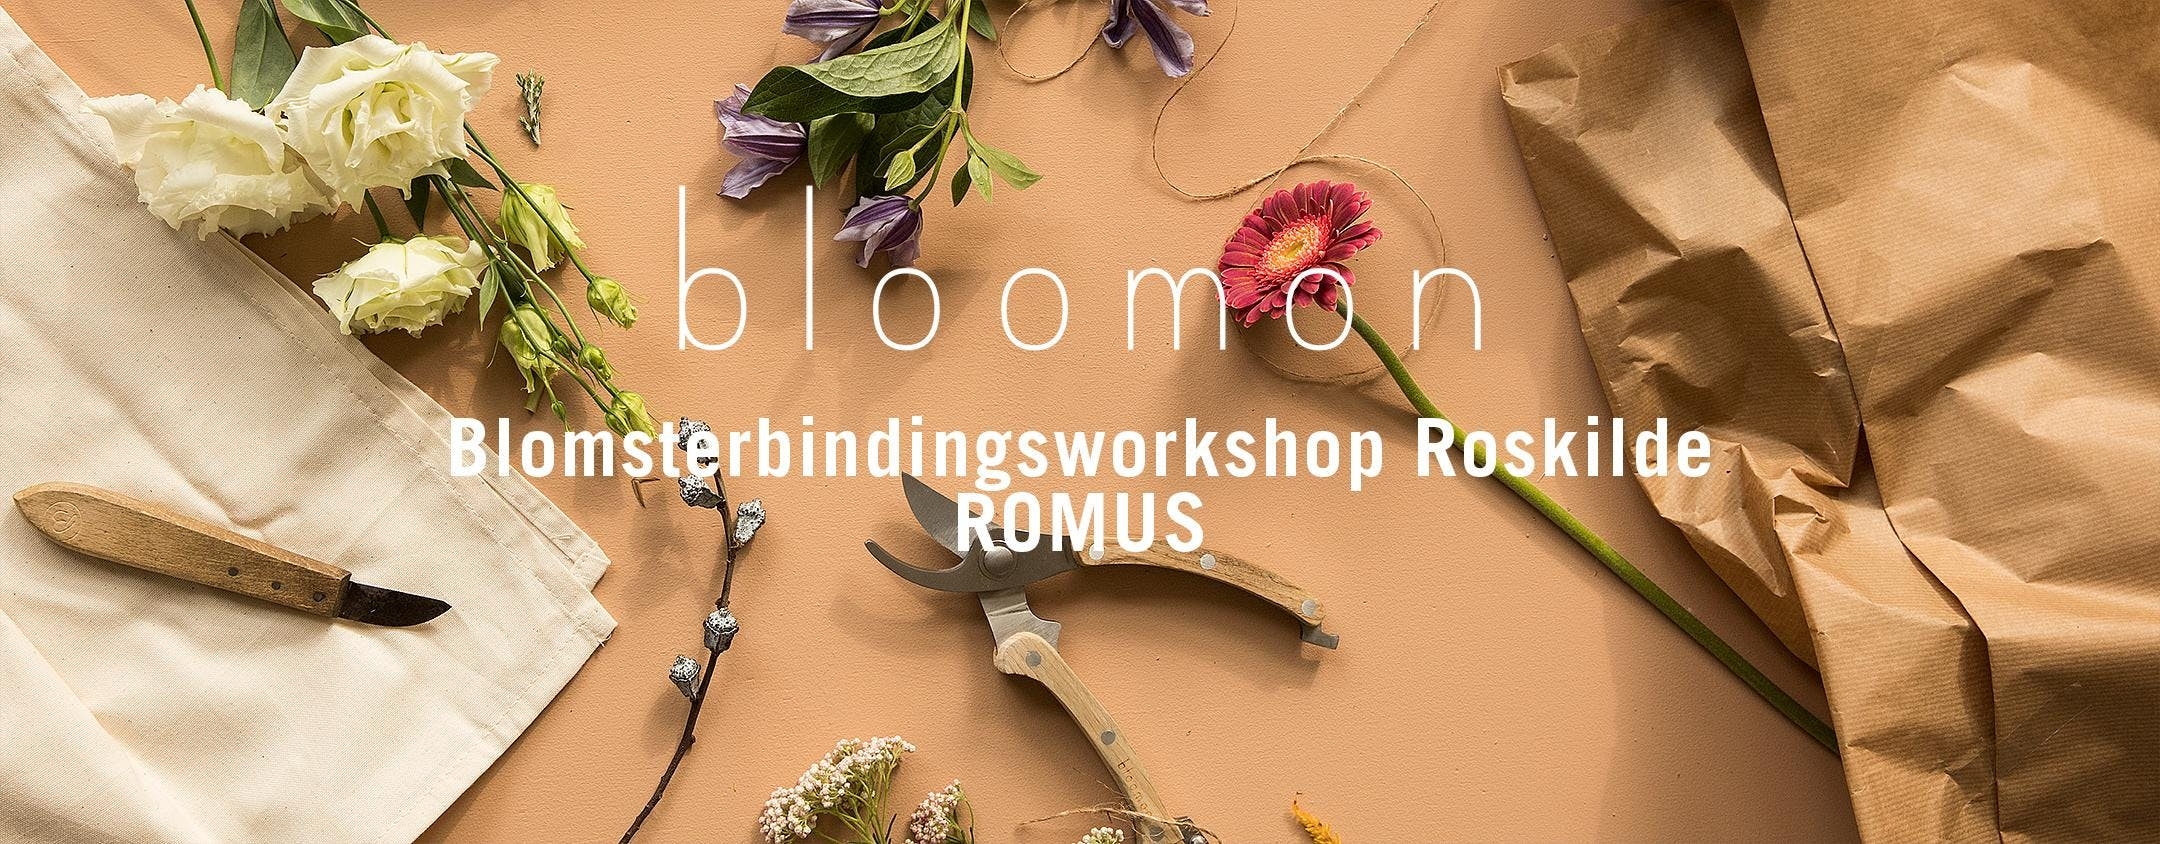 bloomon blomsterbindings-workshop 12. decembe